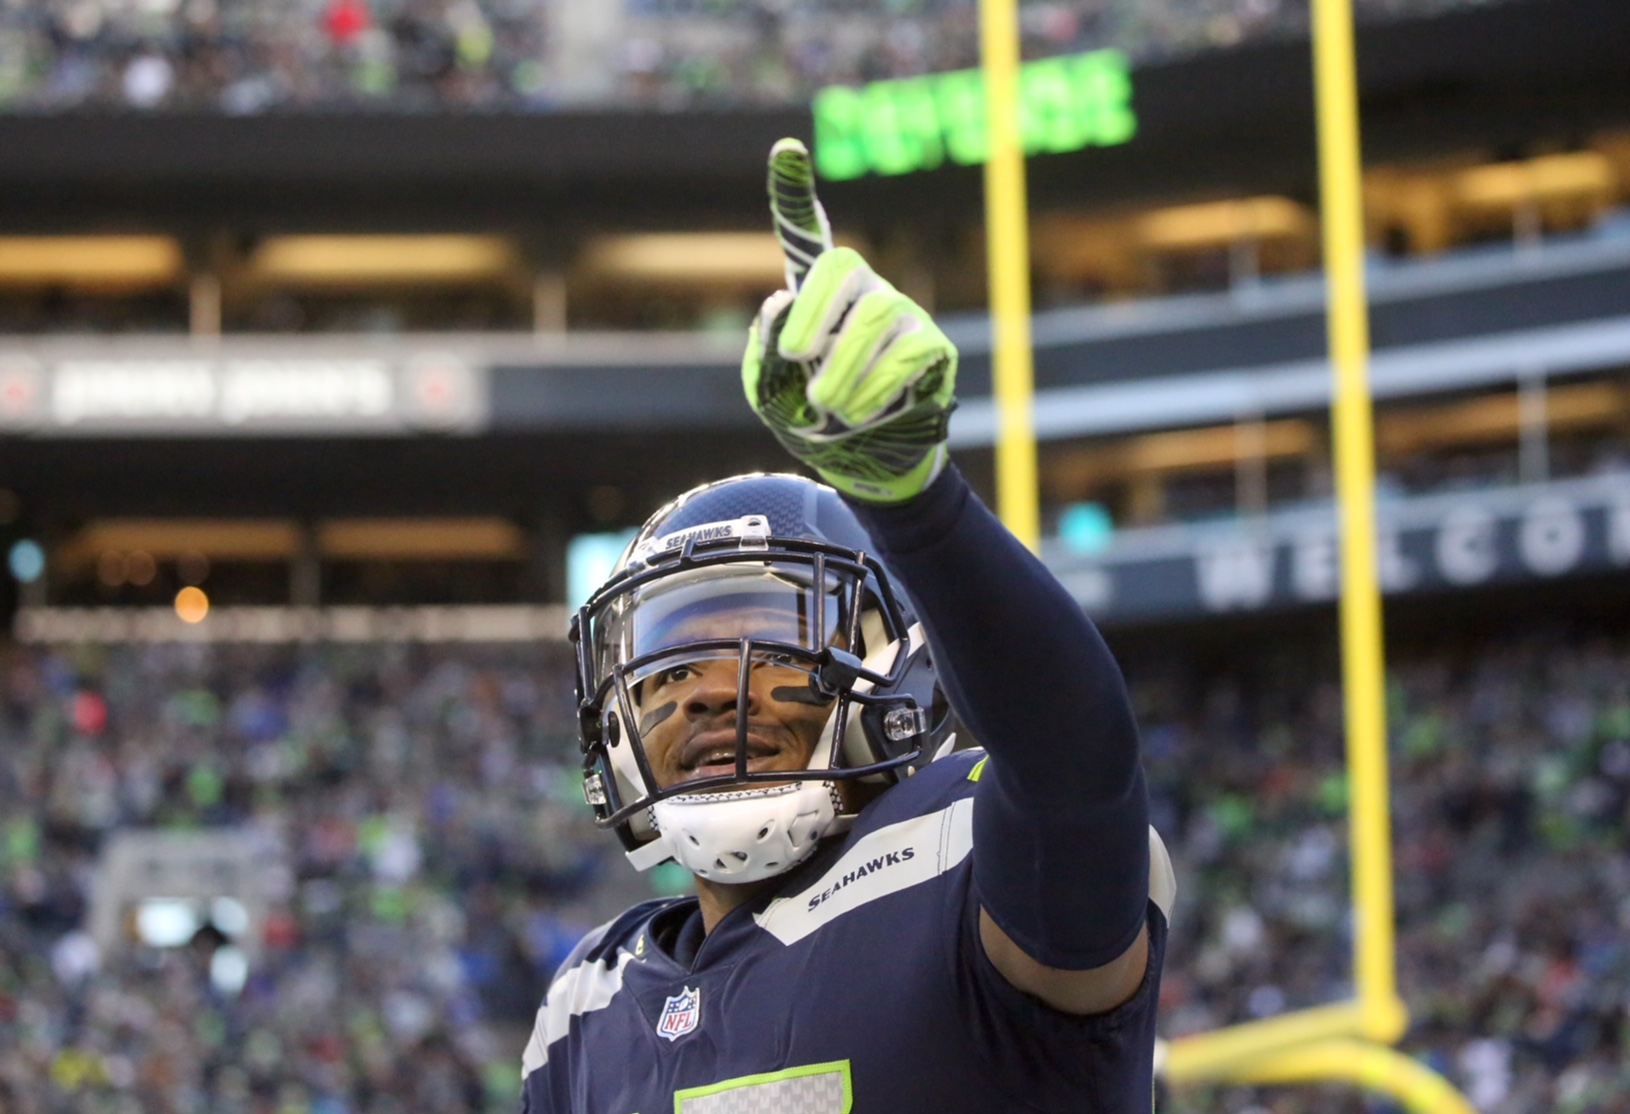 The Seattle Seahawks play the Arizona Cardinals at CenturyLink Field in Seattle for their last game of the regular season. (Photo: Sy Bean)<p></p>